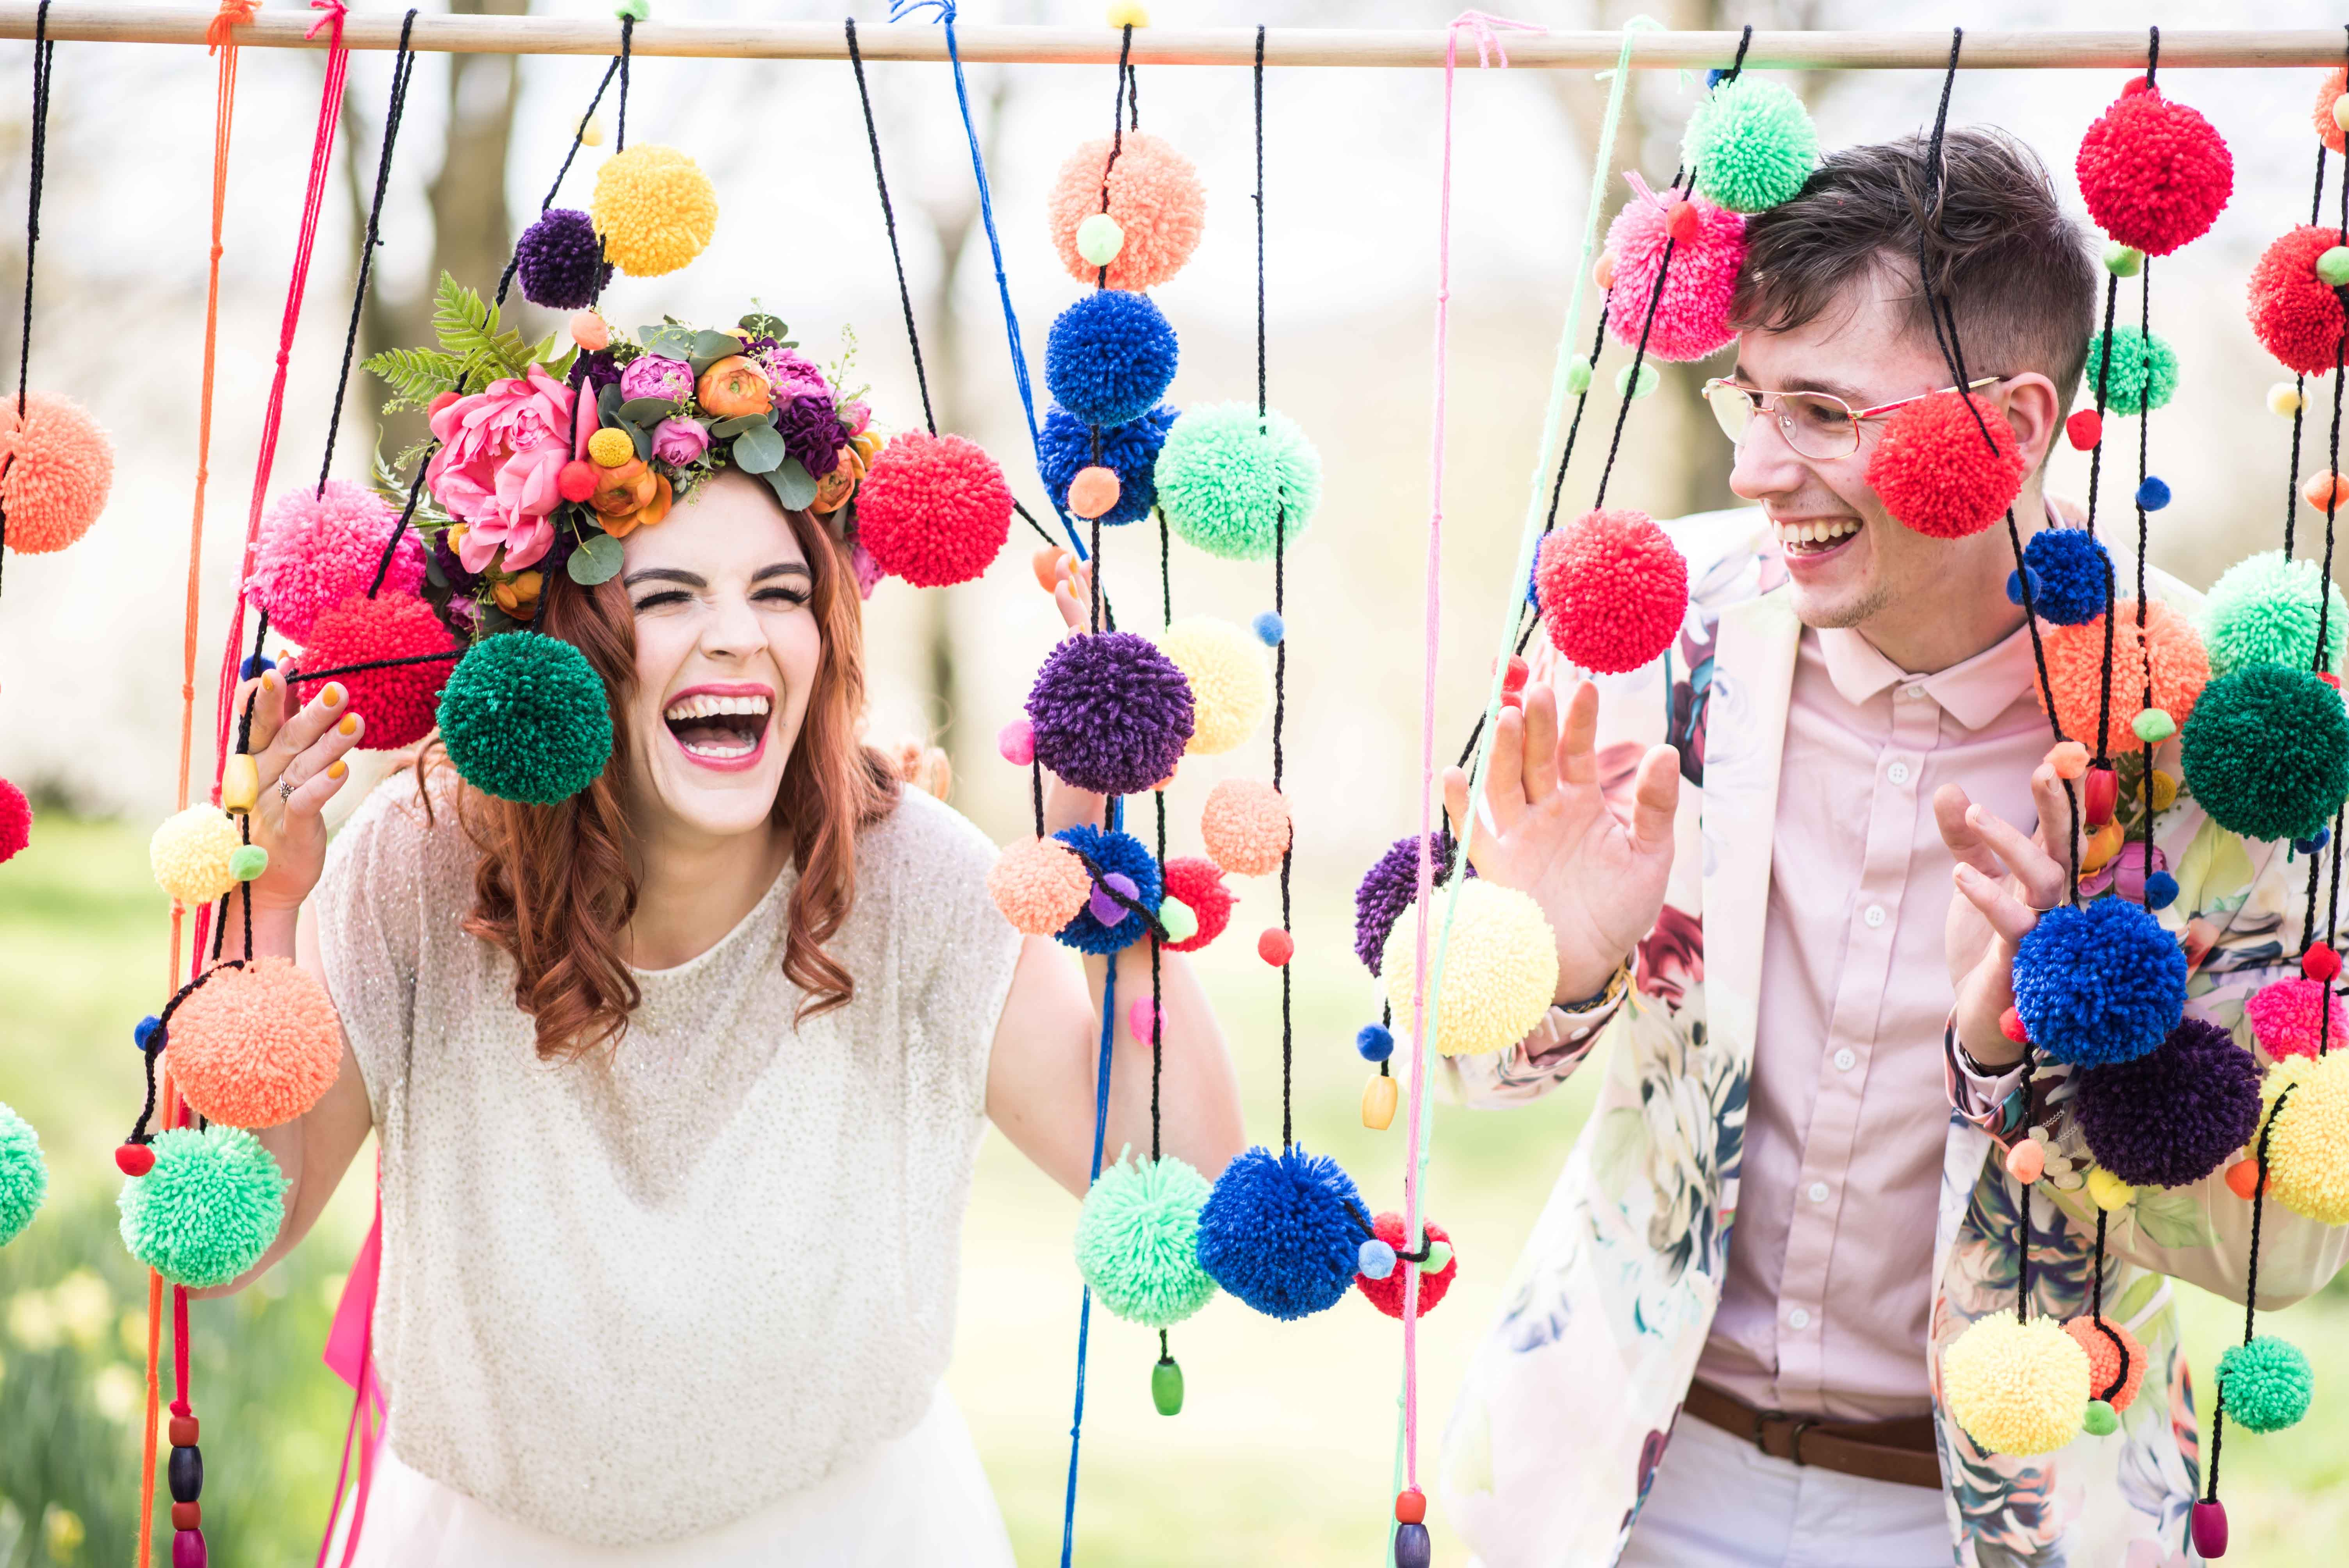 Matt Glover Photography- Quirky Rainbow Wedding- Unconventional Wedding- Alternative Wedding- Unique Wedding- Creative Wedding- Colourful Wedding- Unique Wedding Ideas- Unique Wedding Dress- Unique Groomswear